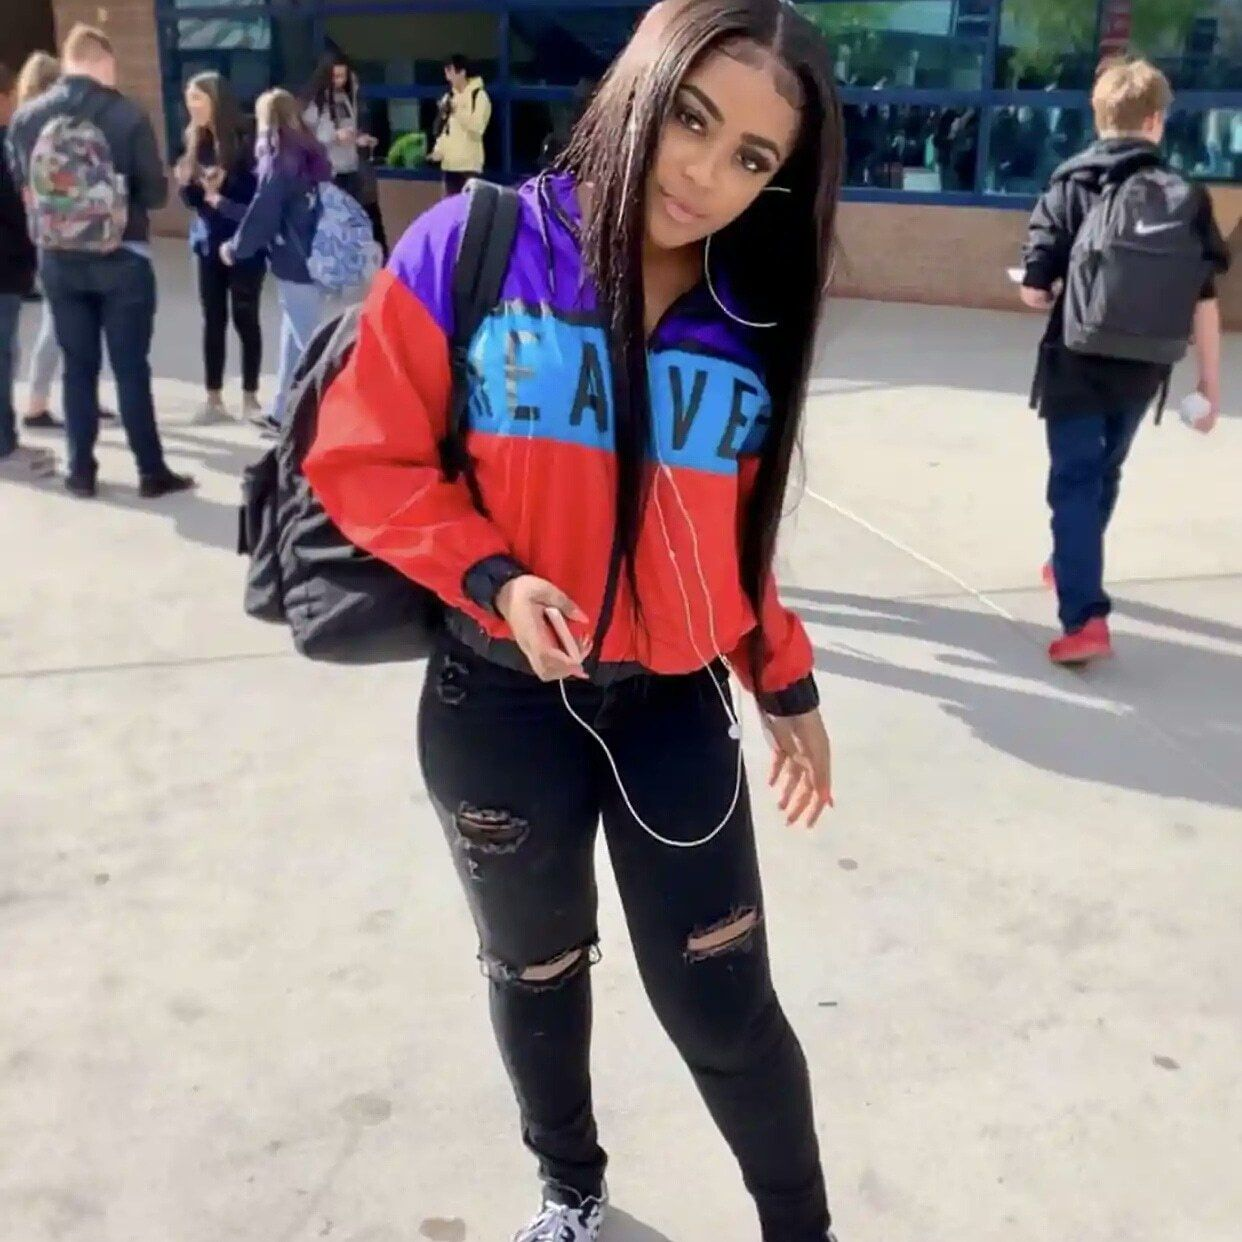 Social Media Influencer Milli Rae Knows How To Dress Prepared For School Social Media Influencer Street Chic Influencer